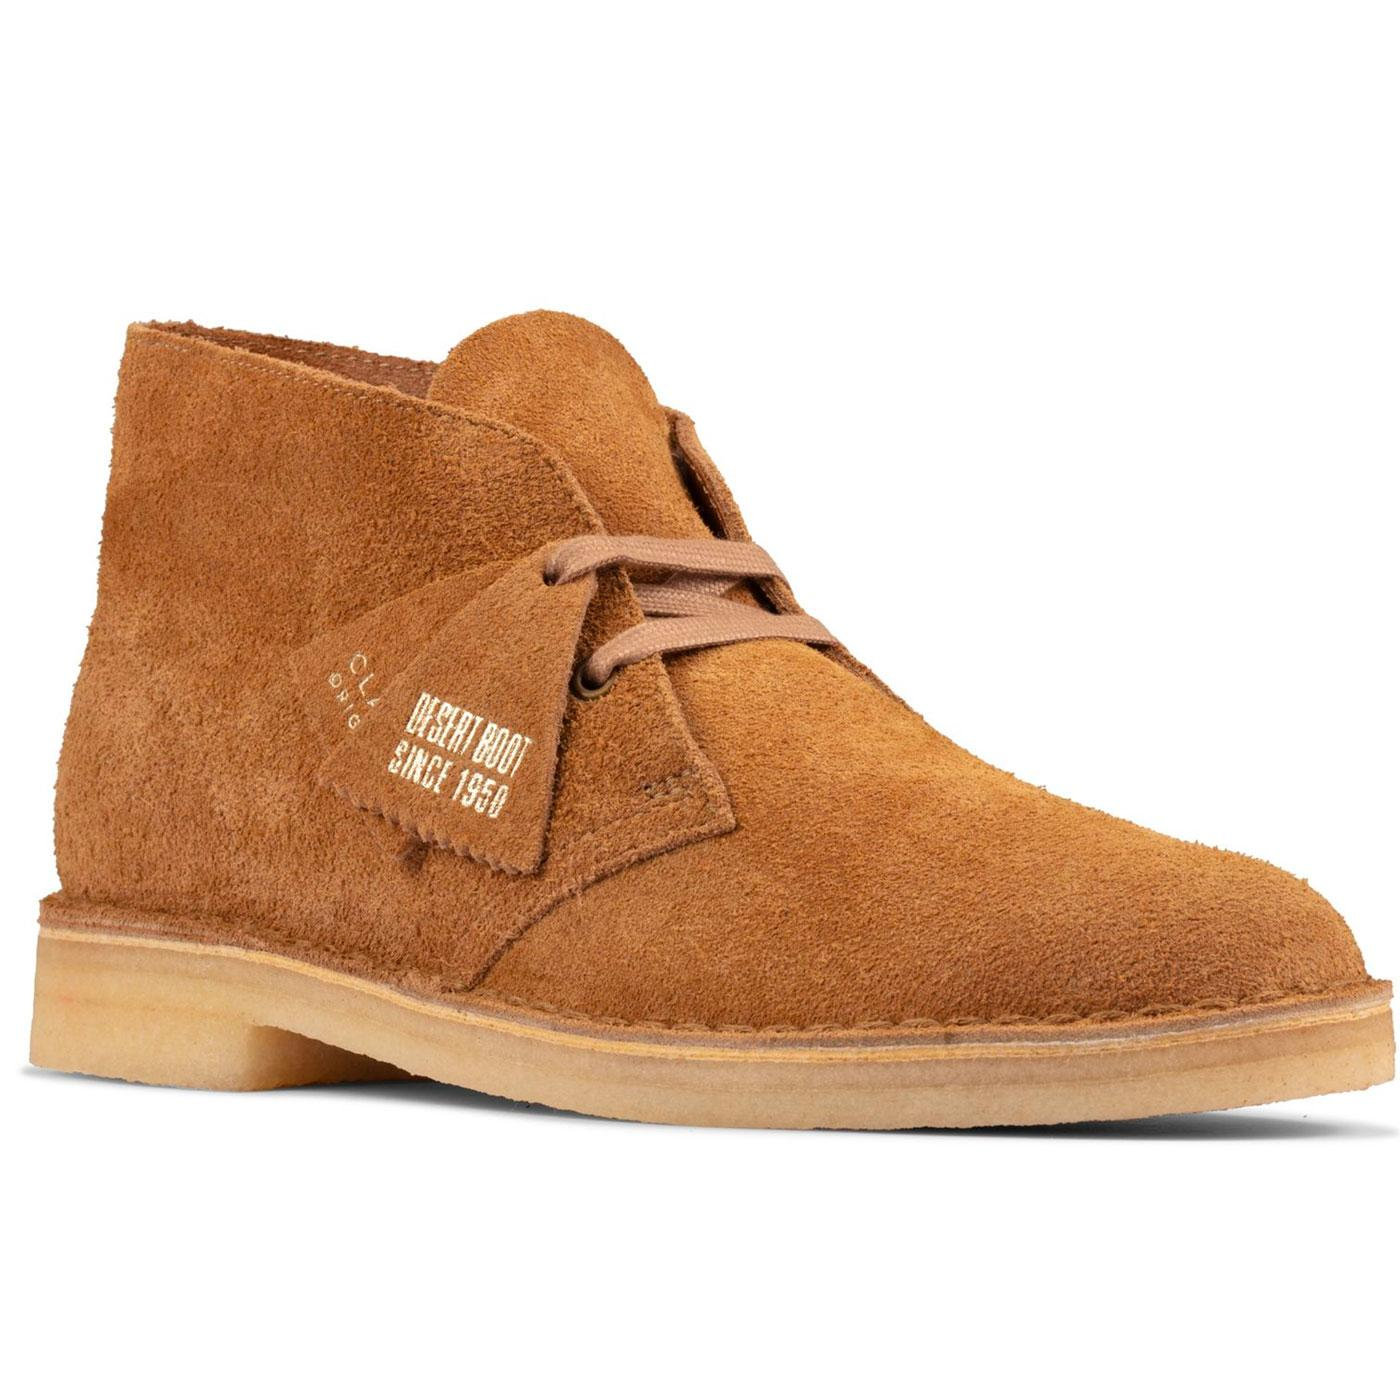 CLARKS ORIGINALS Women's Desert Boots in Nutmeg